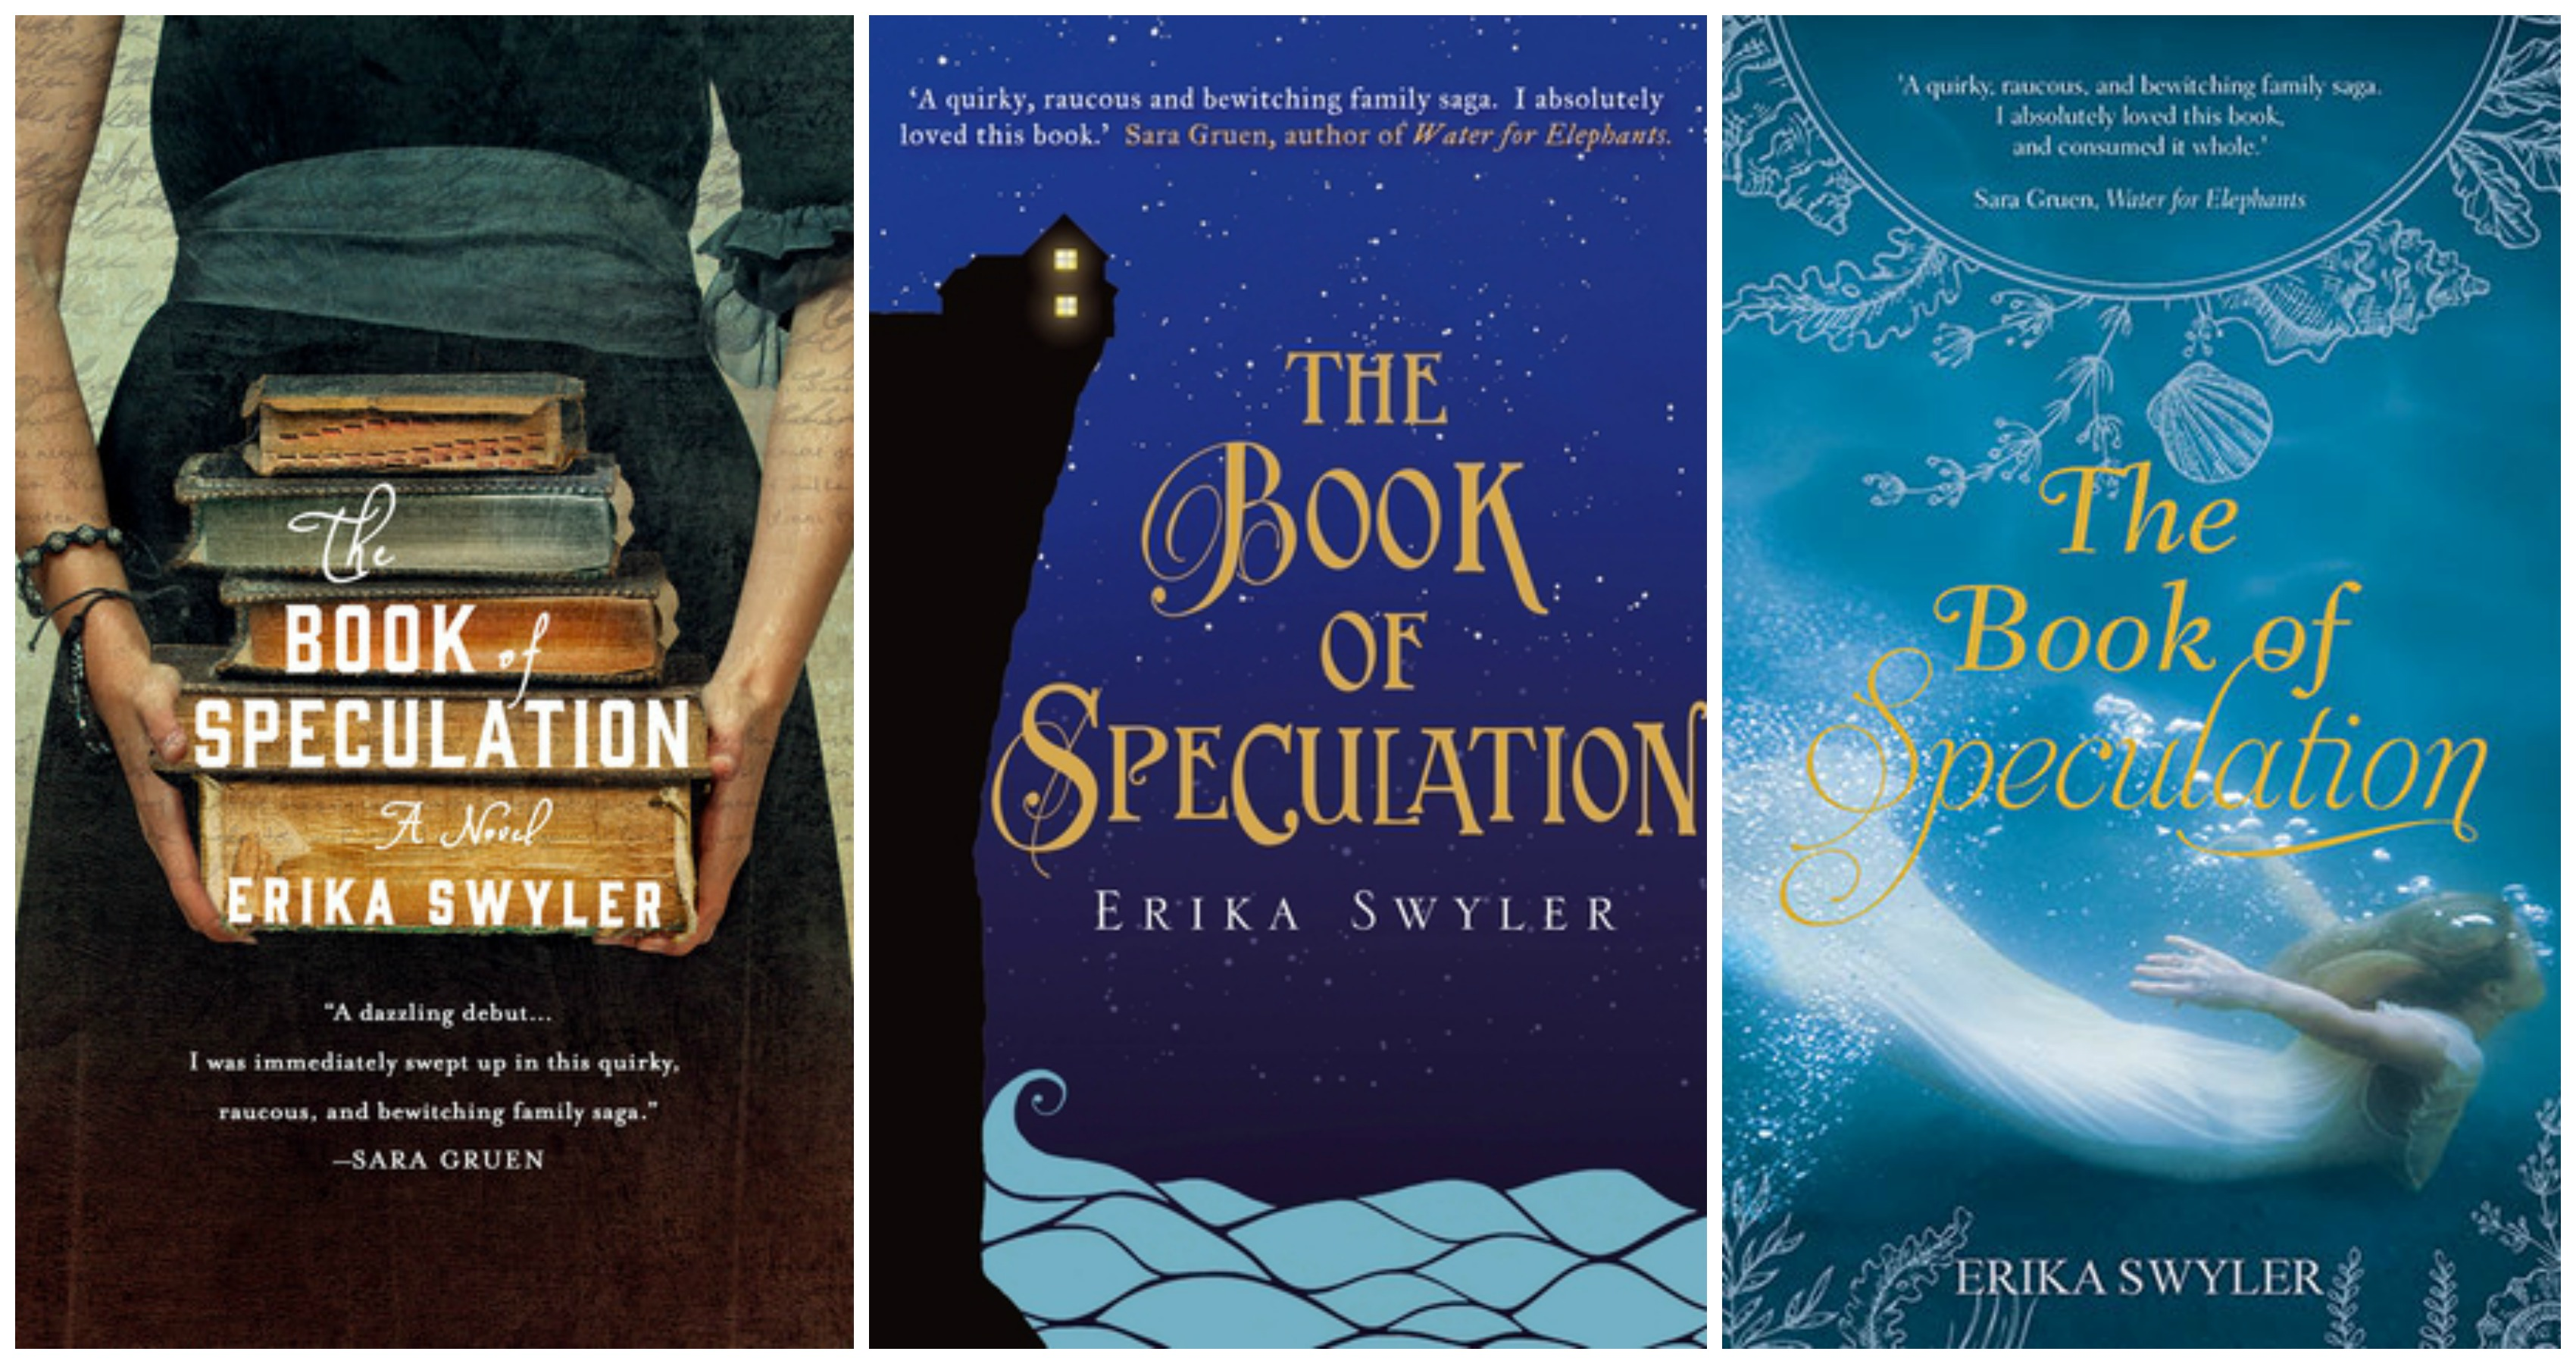 The Book of Speculation Covers